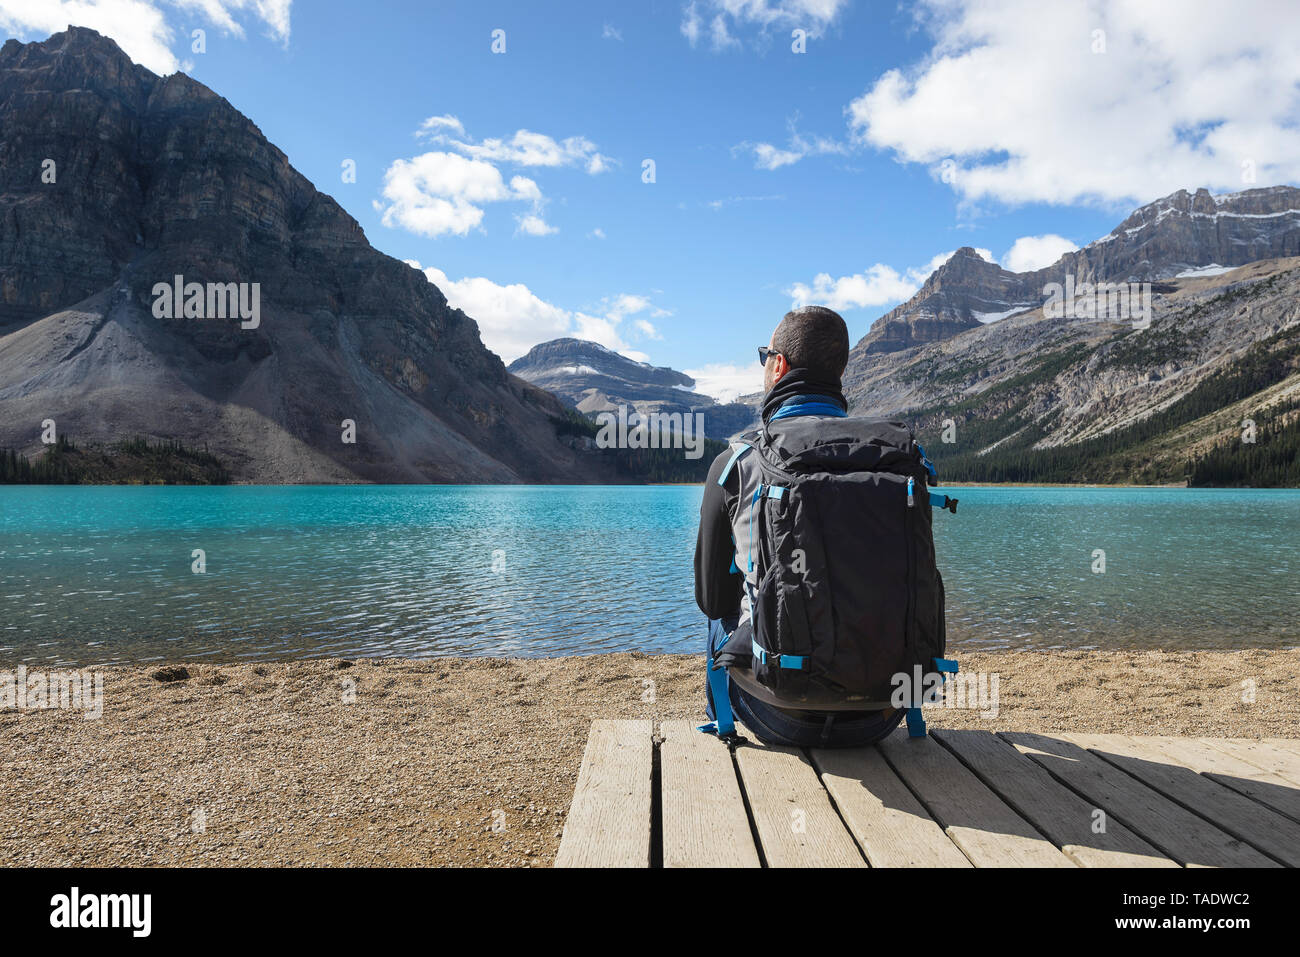 Canada, Jasper and Banff National Park, Icefields Parkway, man at lakeside - Stock Image